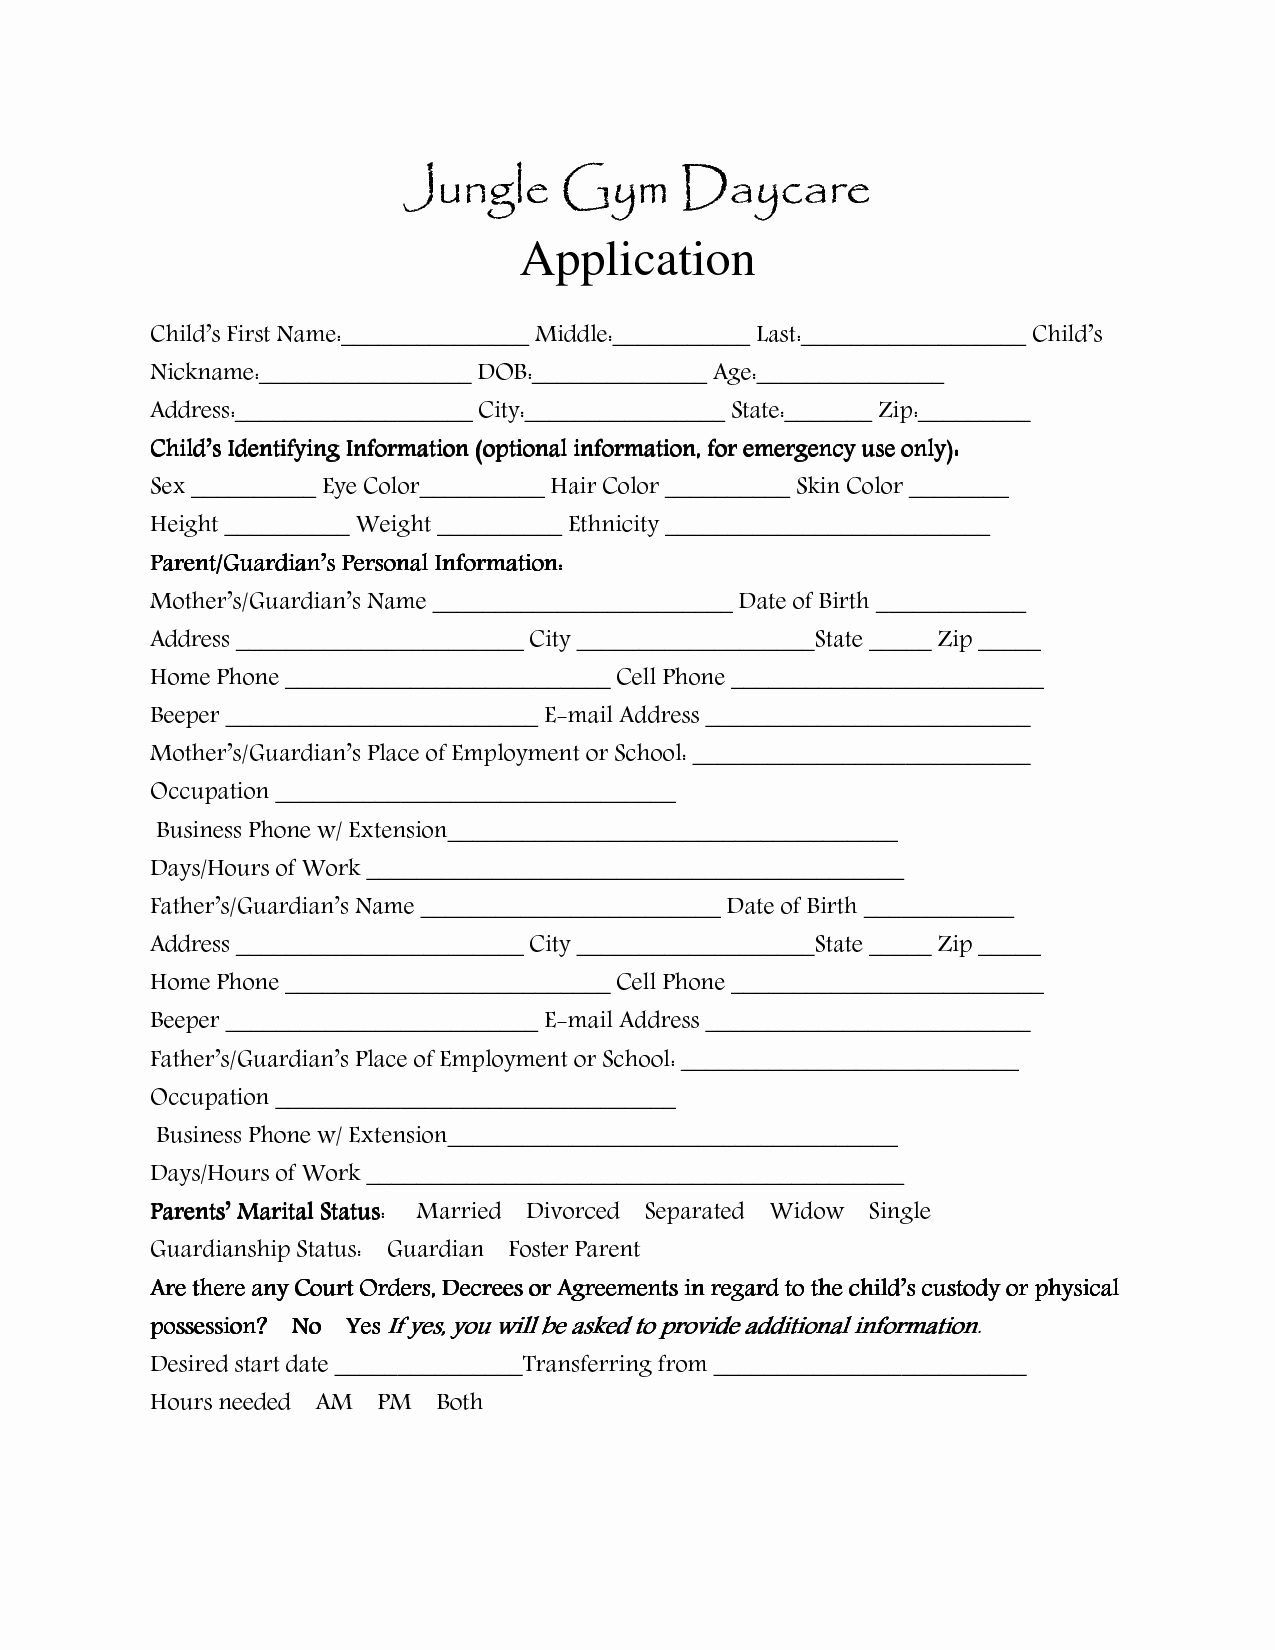 Child Care Application Template Lovely Day Care Application forms Template Daycare